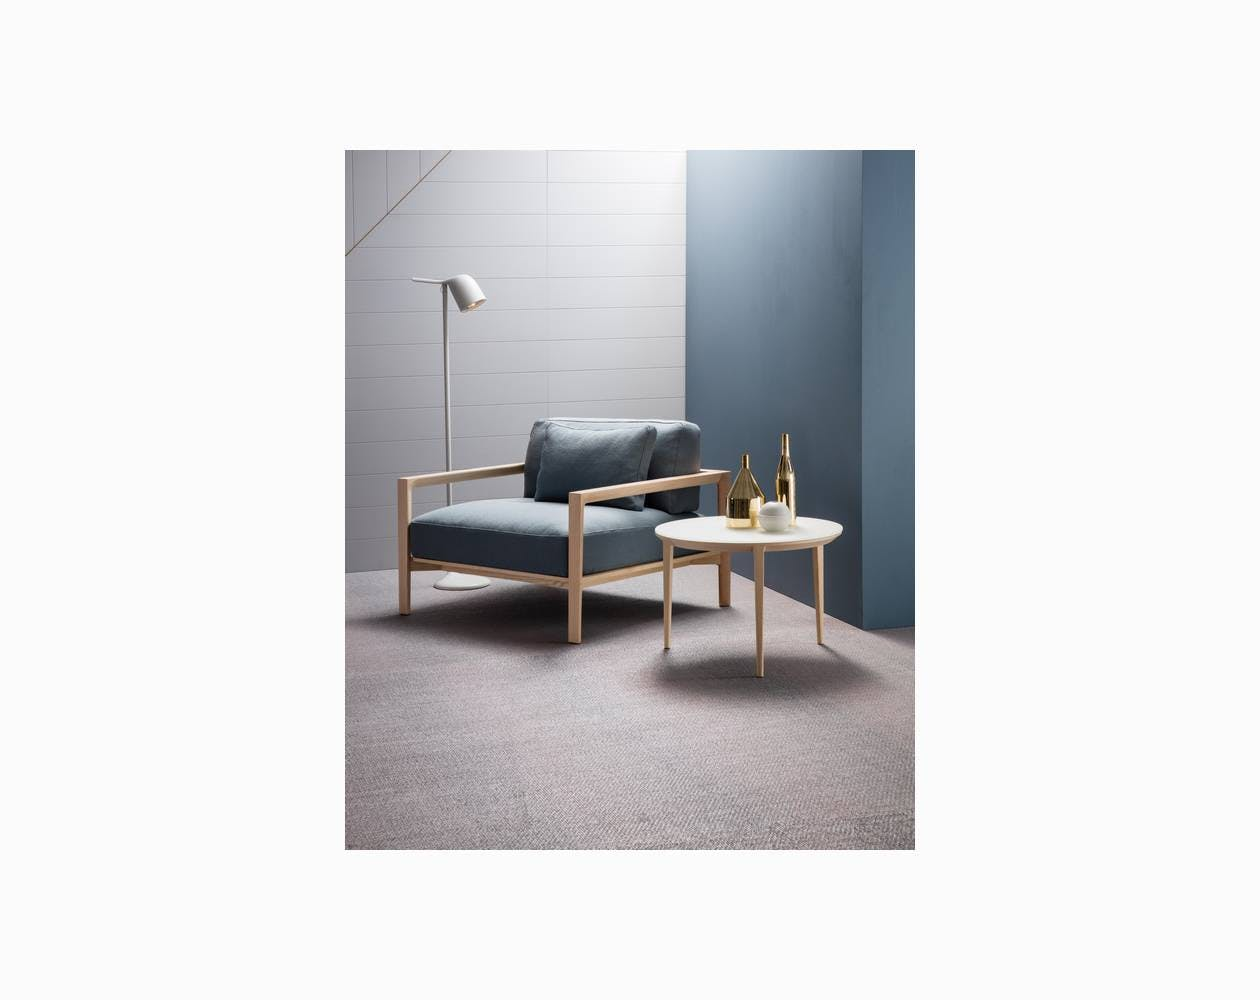 Etoile Coffee Table By Metrica For Sp01 Sp01 Design